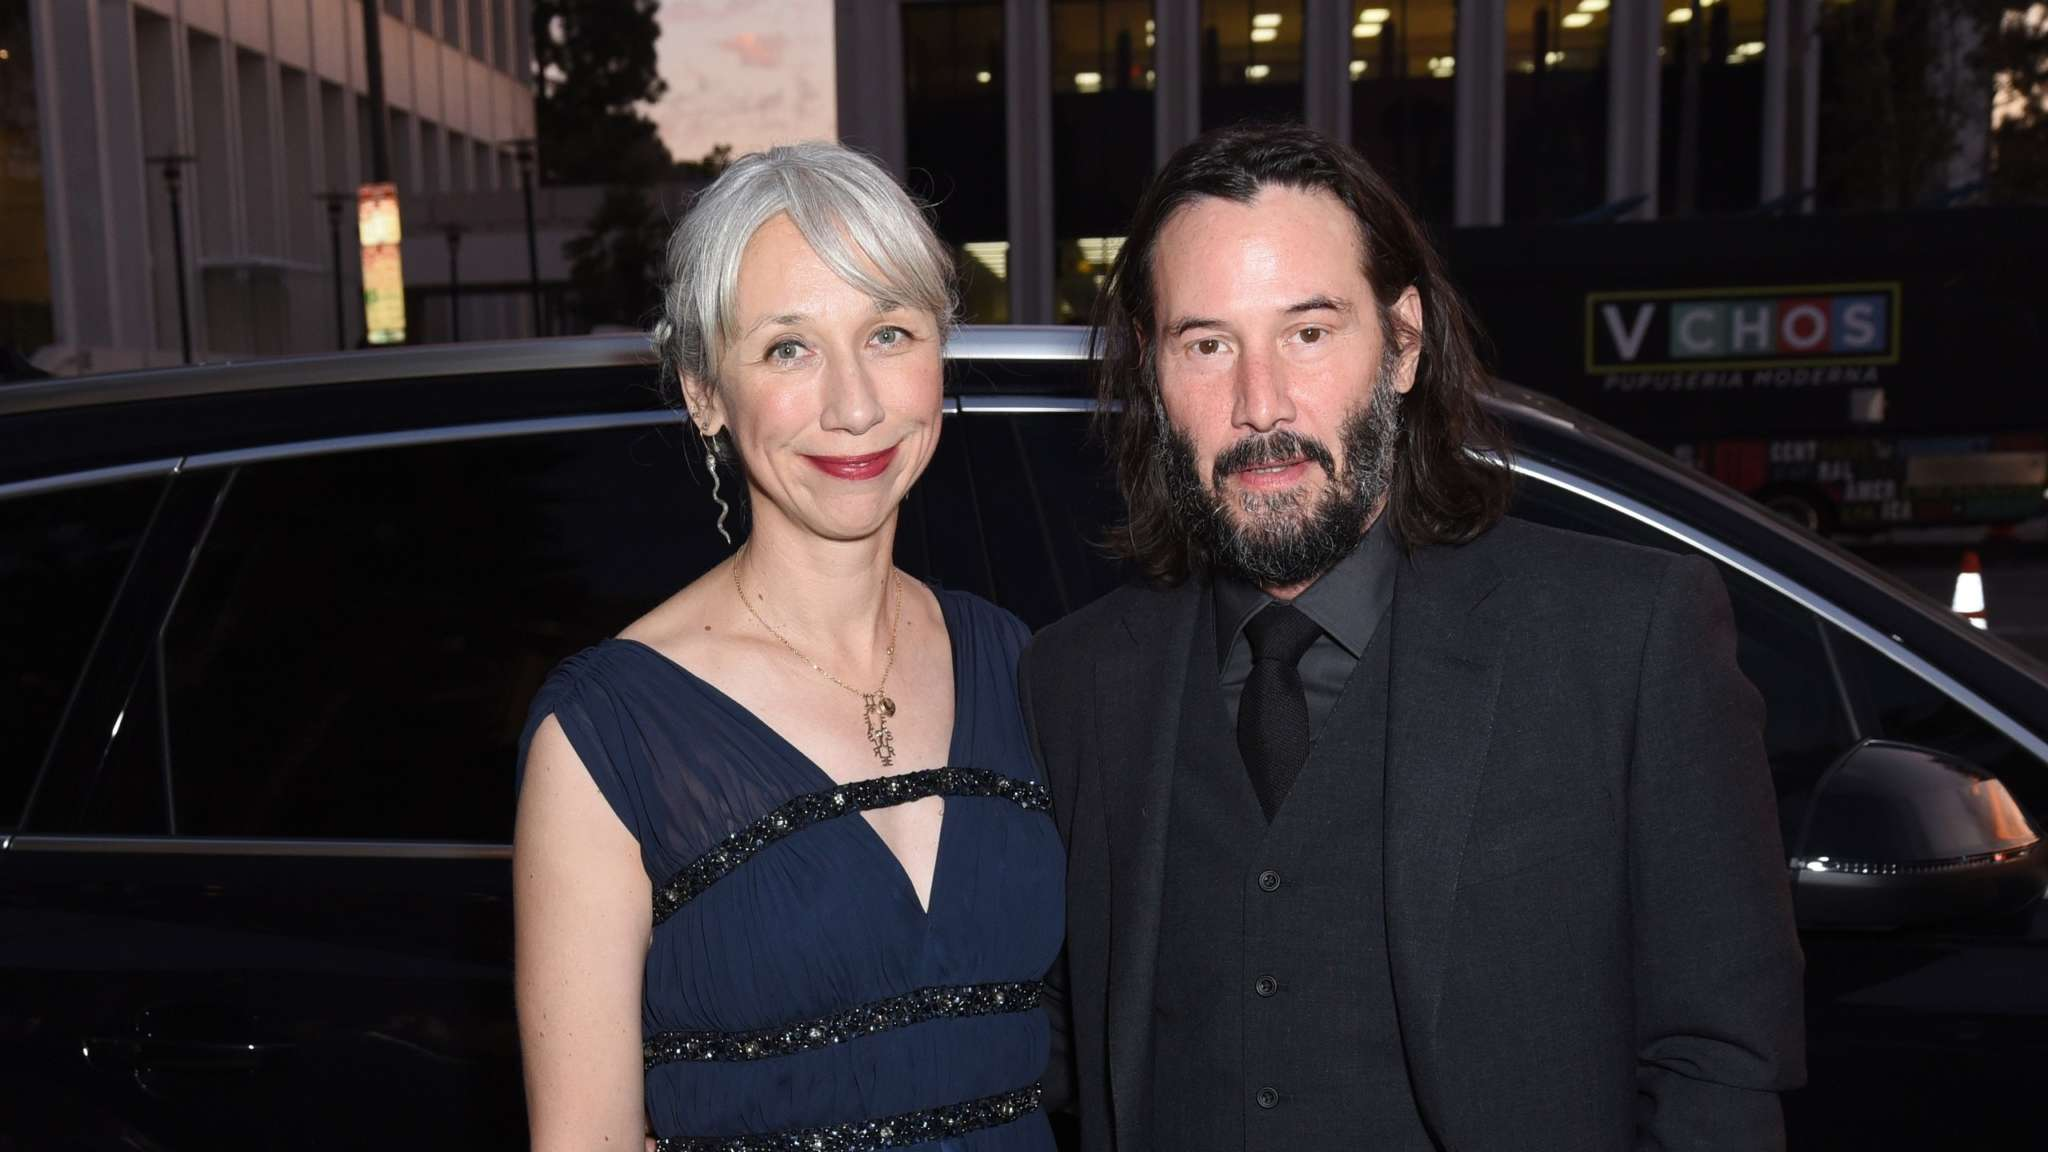 Keanu Reeves' girlfriend Alexandra Grant's phone blew up after relationship went public